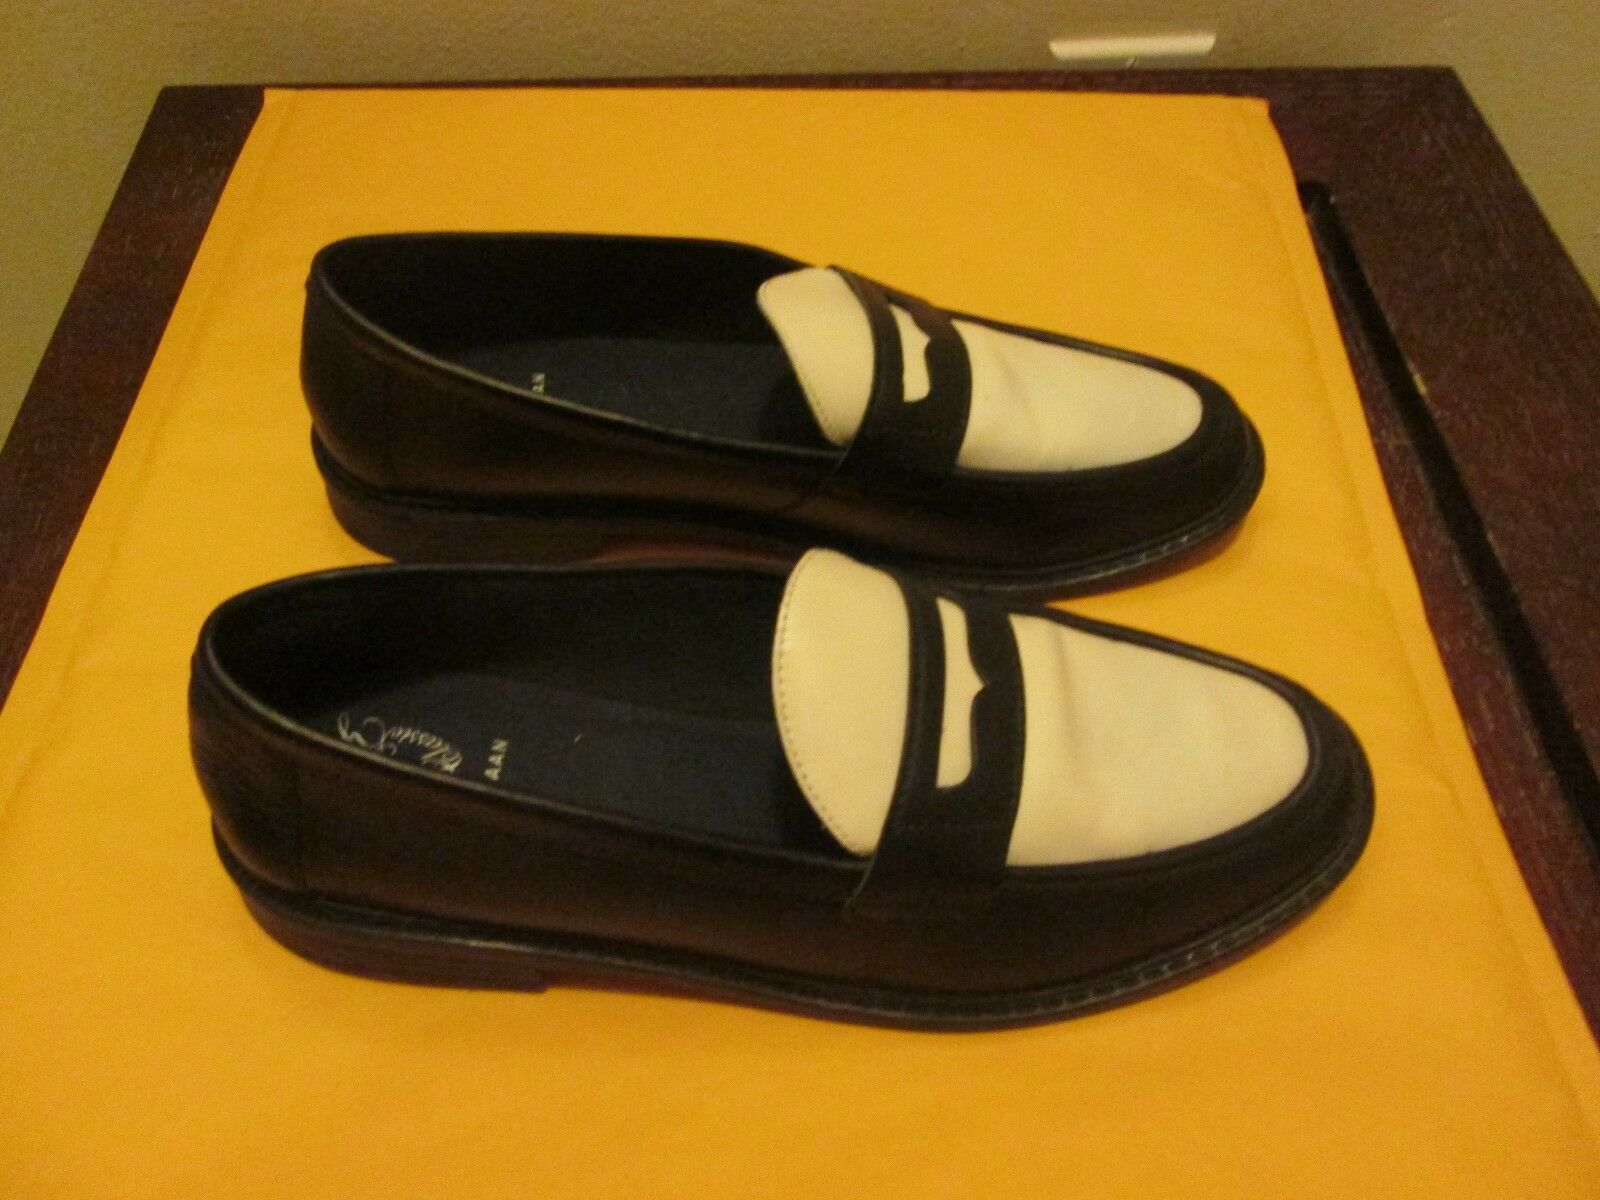 COLE HAAN WOMEN'S PINCH CAMPUS PENNY SHOE NEW IN IN IN BOX SIZE 8.5 BLACK & IVORY bb4bcb